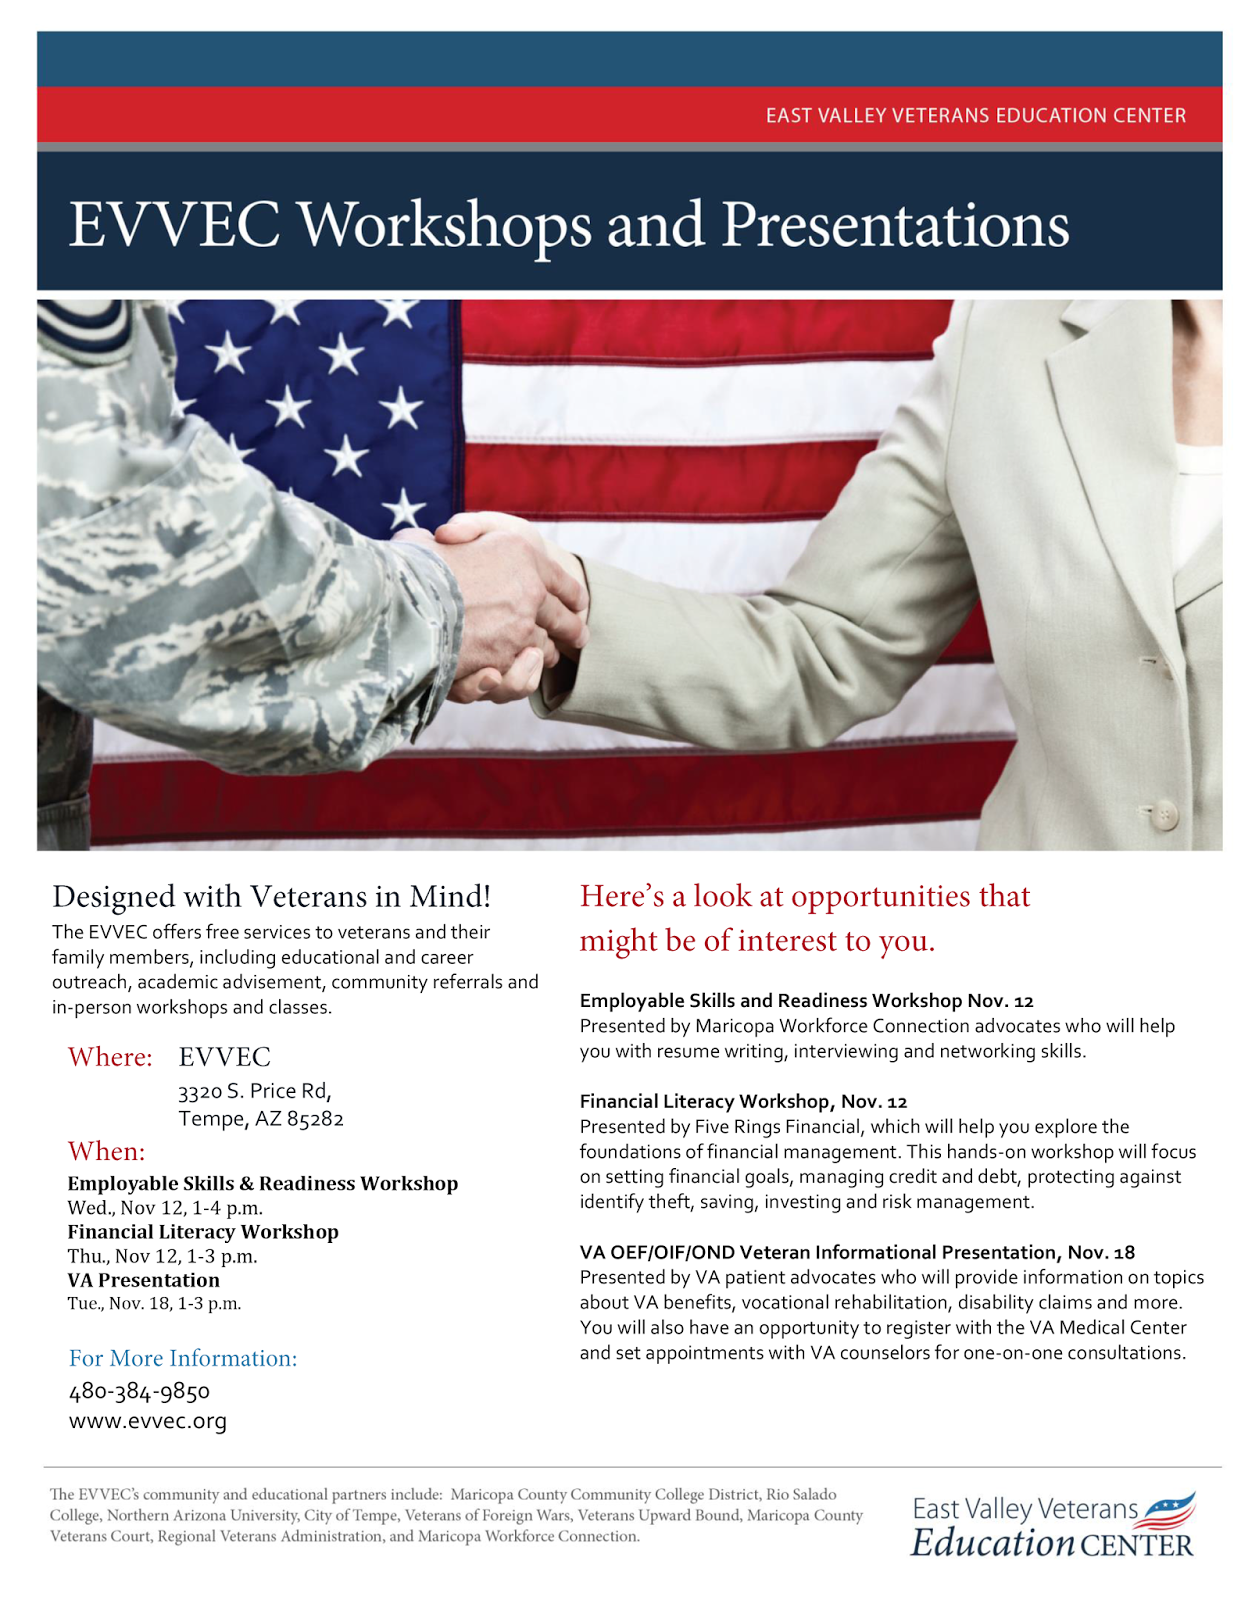 Designed with Veterans in Mind! The EVVEC offers free services to veterans and their family members, including educational and career outreach, academic advisement, community referrals and in-person workshops and classes.  Where: EVVEC, 3320 S. Price Rd, Tempe, AZ 85282. When: Employable Skills & Readiness Workshop  Wed., Nov 12, 1-4 p.m.; Financial Literacy Workshop  Thu., Nov 12, 1-3 p.m.; VA Presentation  Tue., Nov. 18, 1-3 p.m.  Workshop Descriptions: Employable Skills and Readiness Workshop Nov. 12 Presented by Maricopa Workforce Connection advocates who will help you with resume writing, interviewing and networking skills.   Financial Literacy Workshop, Nov. 12 Presented by Five Rings Financial, which will help you explore the foundations of financial management. This hands-on workshop will focus on setting financial goals, managing credit and debt, protecting against identify theft, saving, investing and risk management.   VA OEF/OIF/OND Veteran Informational Presentation, Nov. 18 Presented by VA patient advocates who will provide information on topics about VA benefits, vocational rehabilitation, disability claims and more.  You will also have an opportunity to register with the VA Medical Center and set appointments with VA counselors for one-on-one consultations.